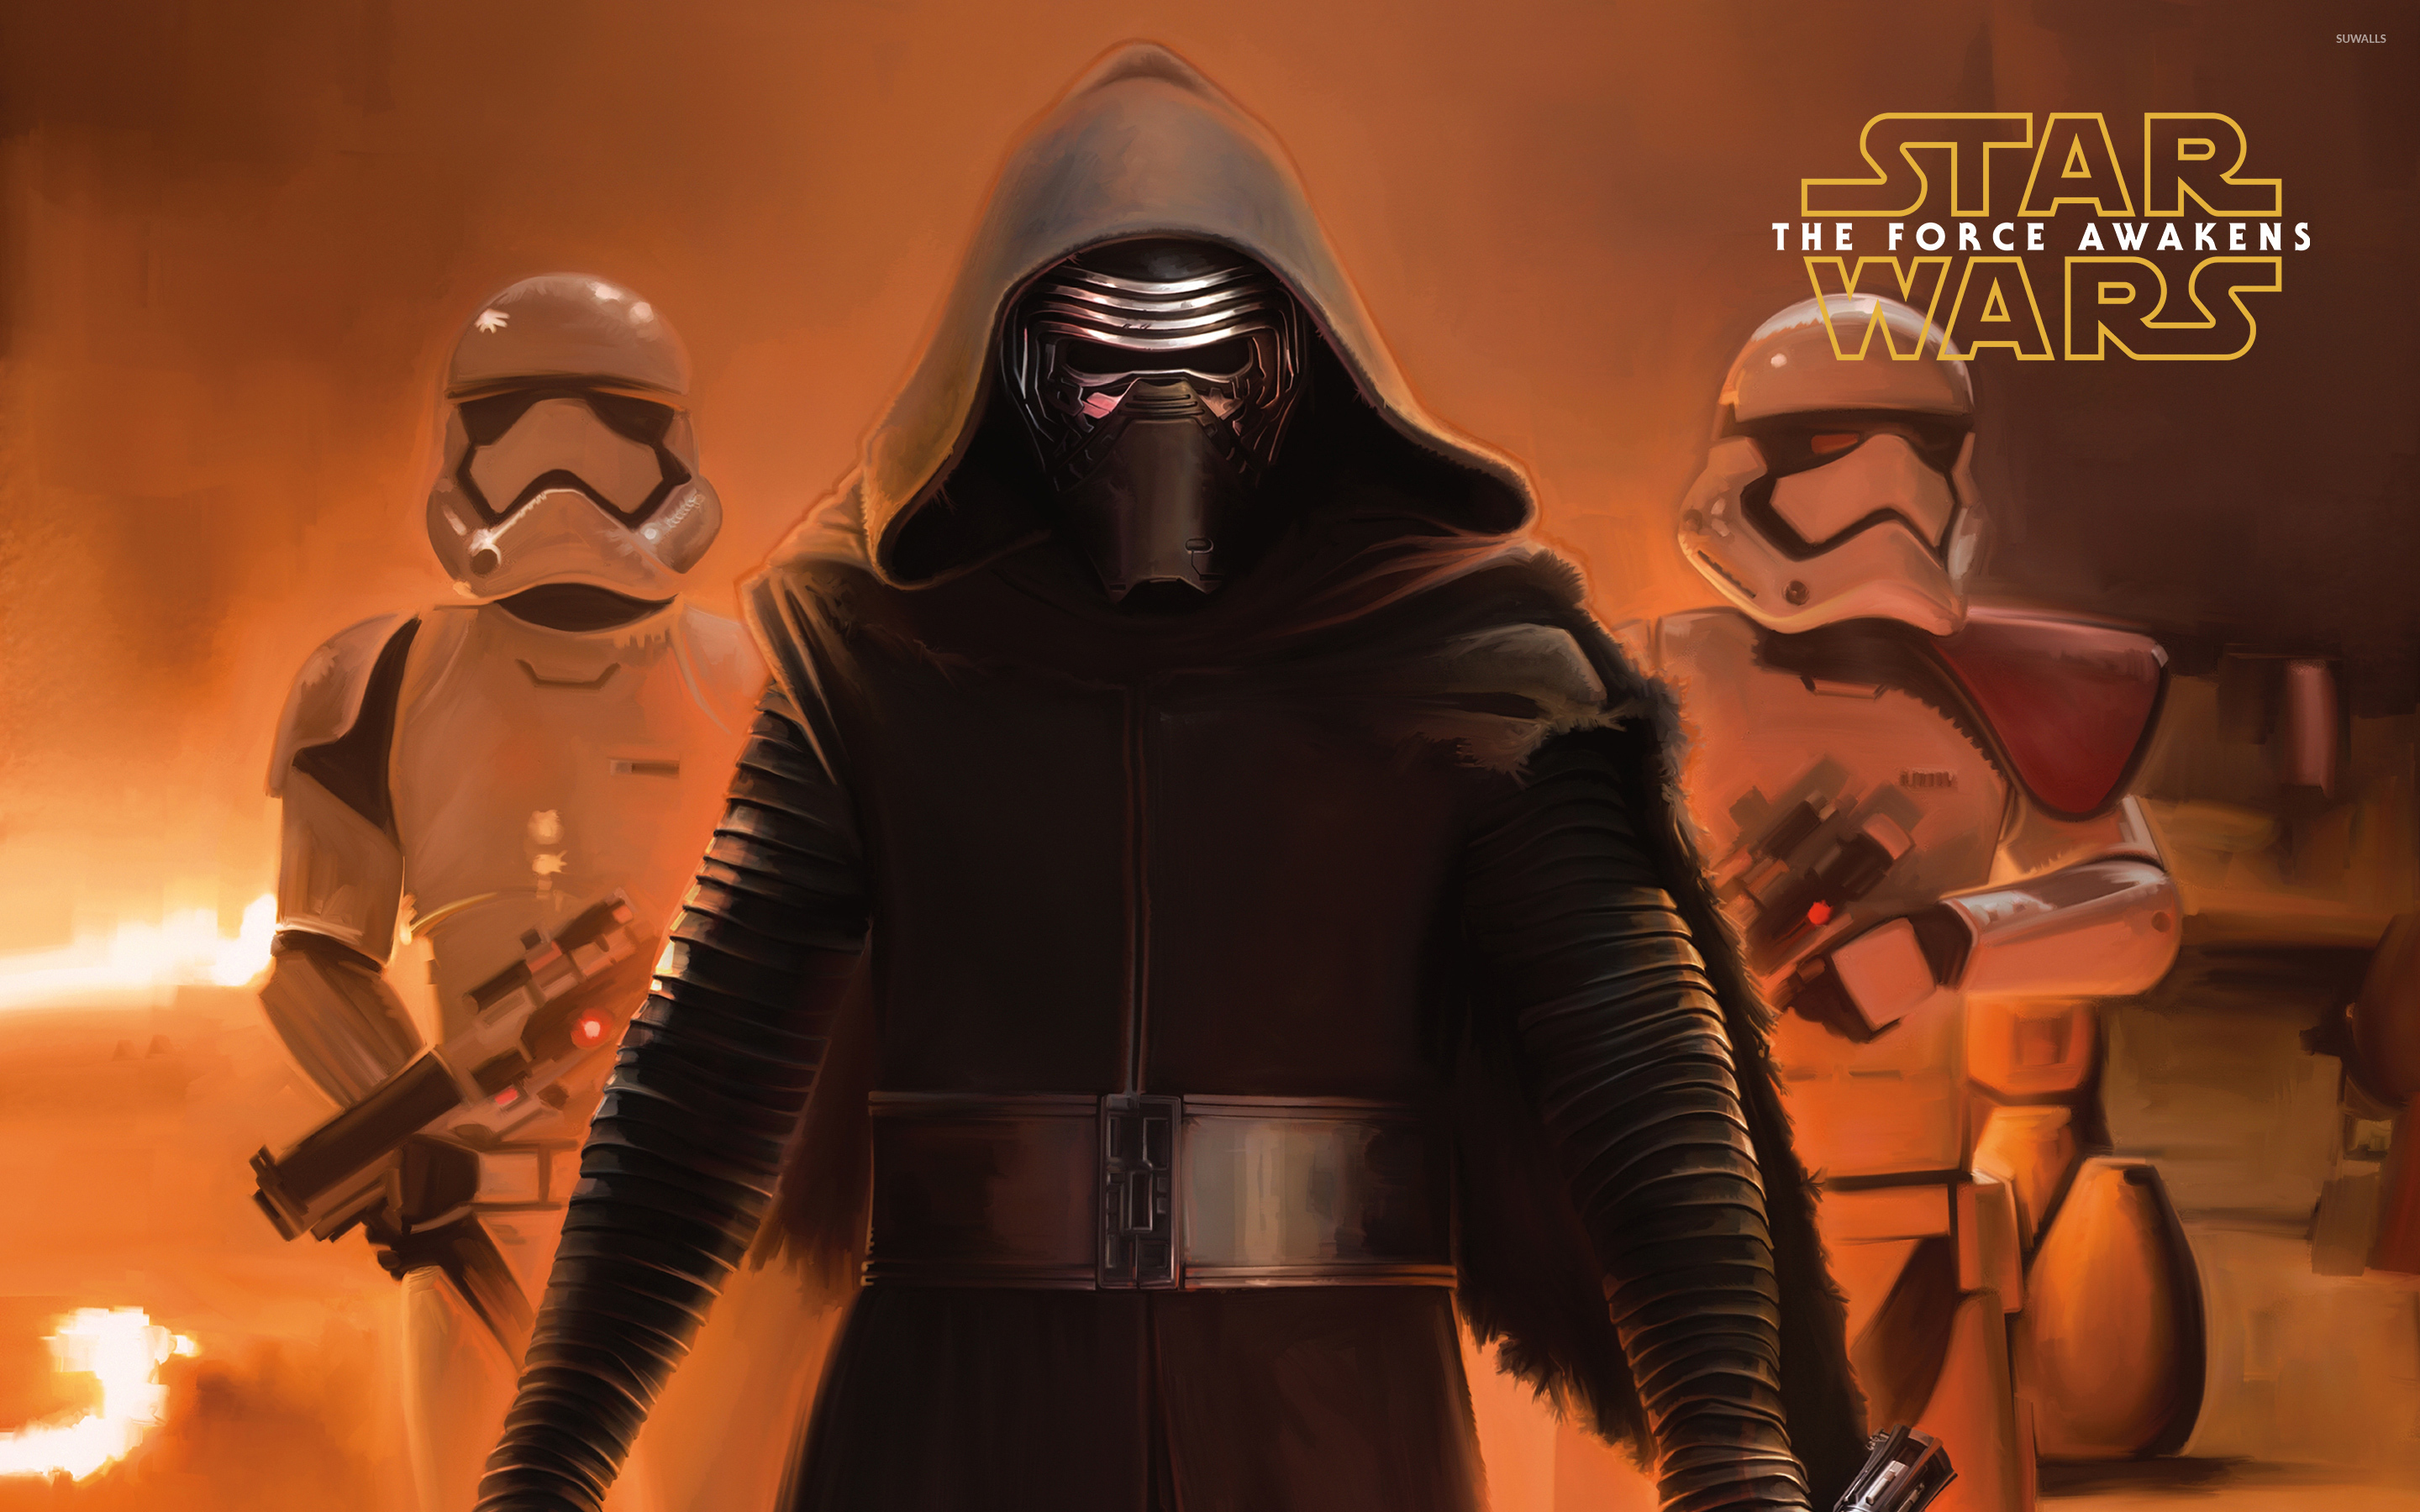 Kylo Ren And Stormtroopers Star Wars The Force Awakens Wallpaper Movie Wallpapers 51510